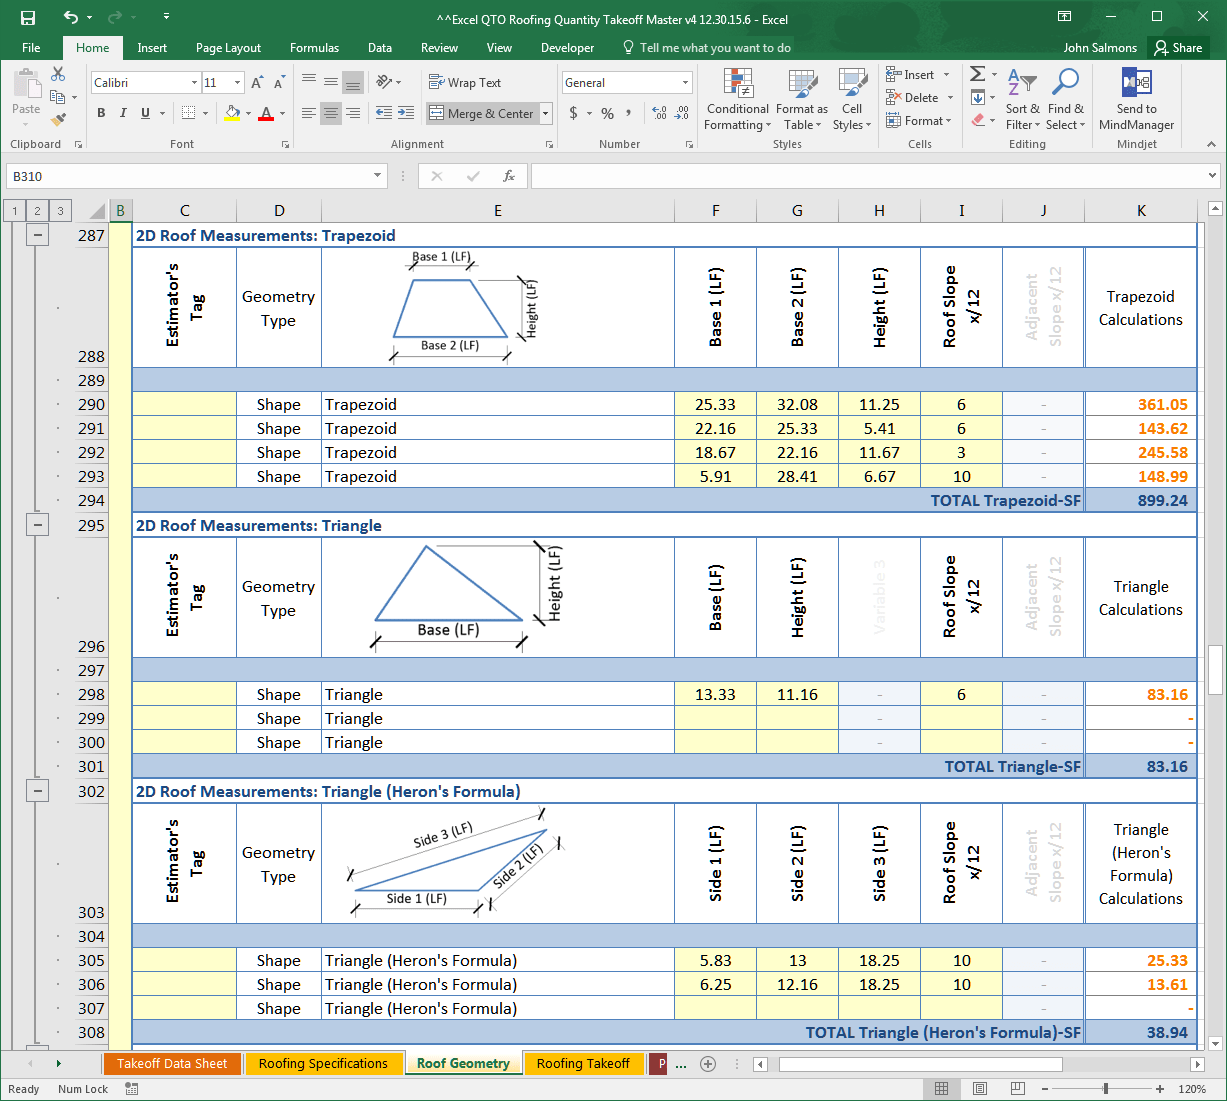 Excel Qto Roofing Quantity Takeoff Amp Pricing Database